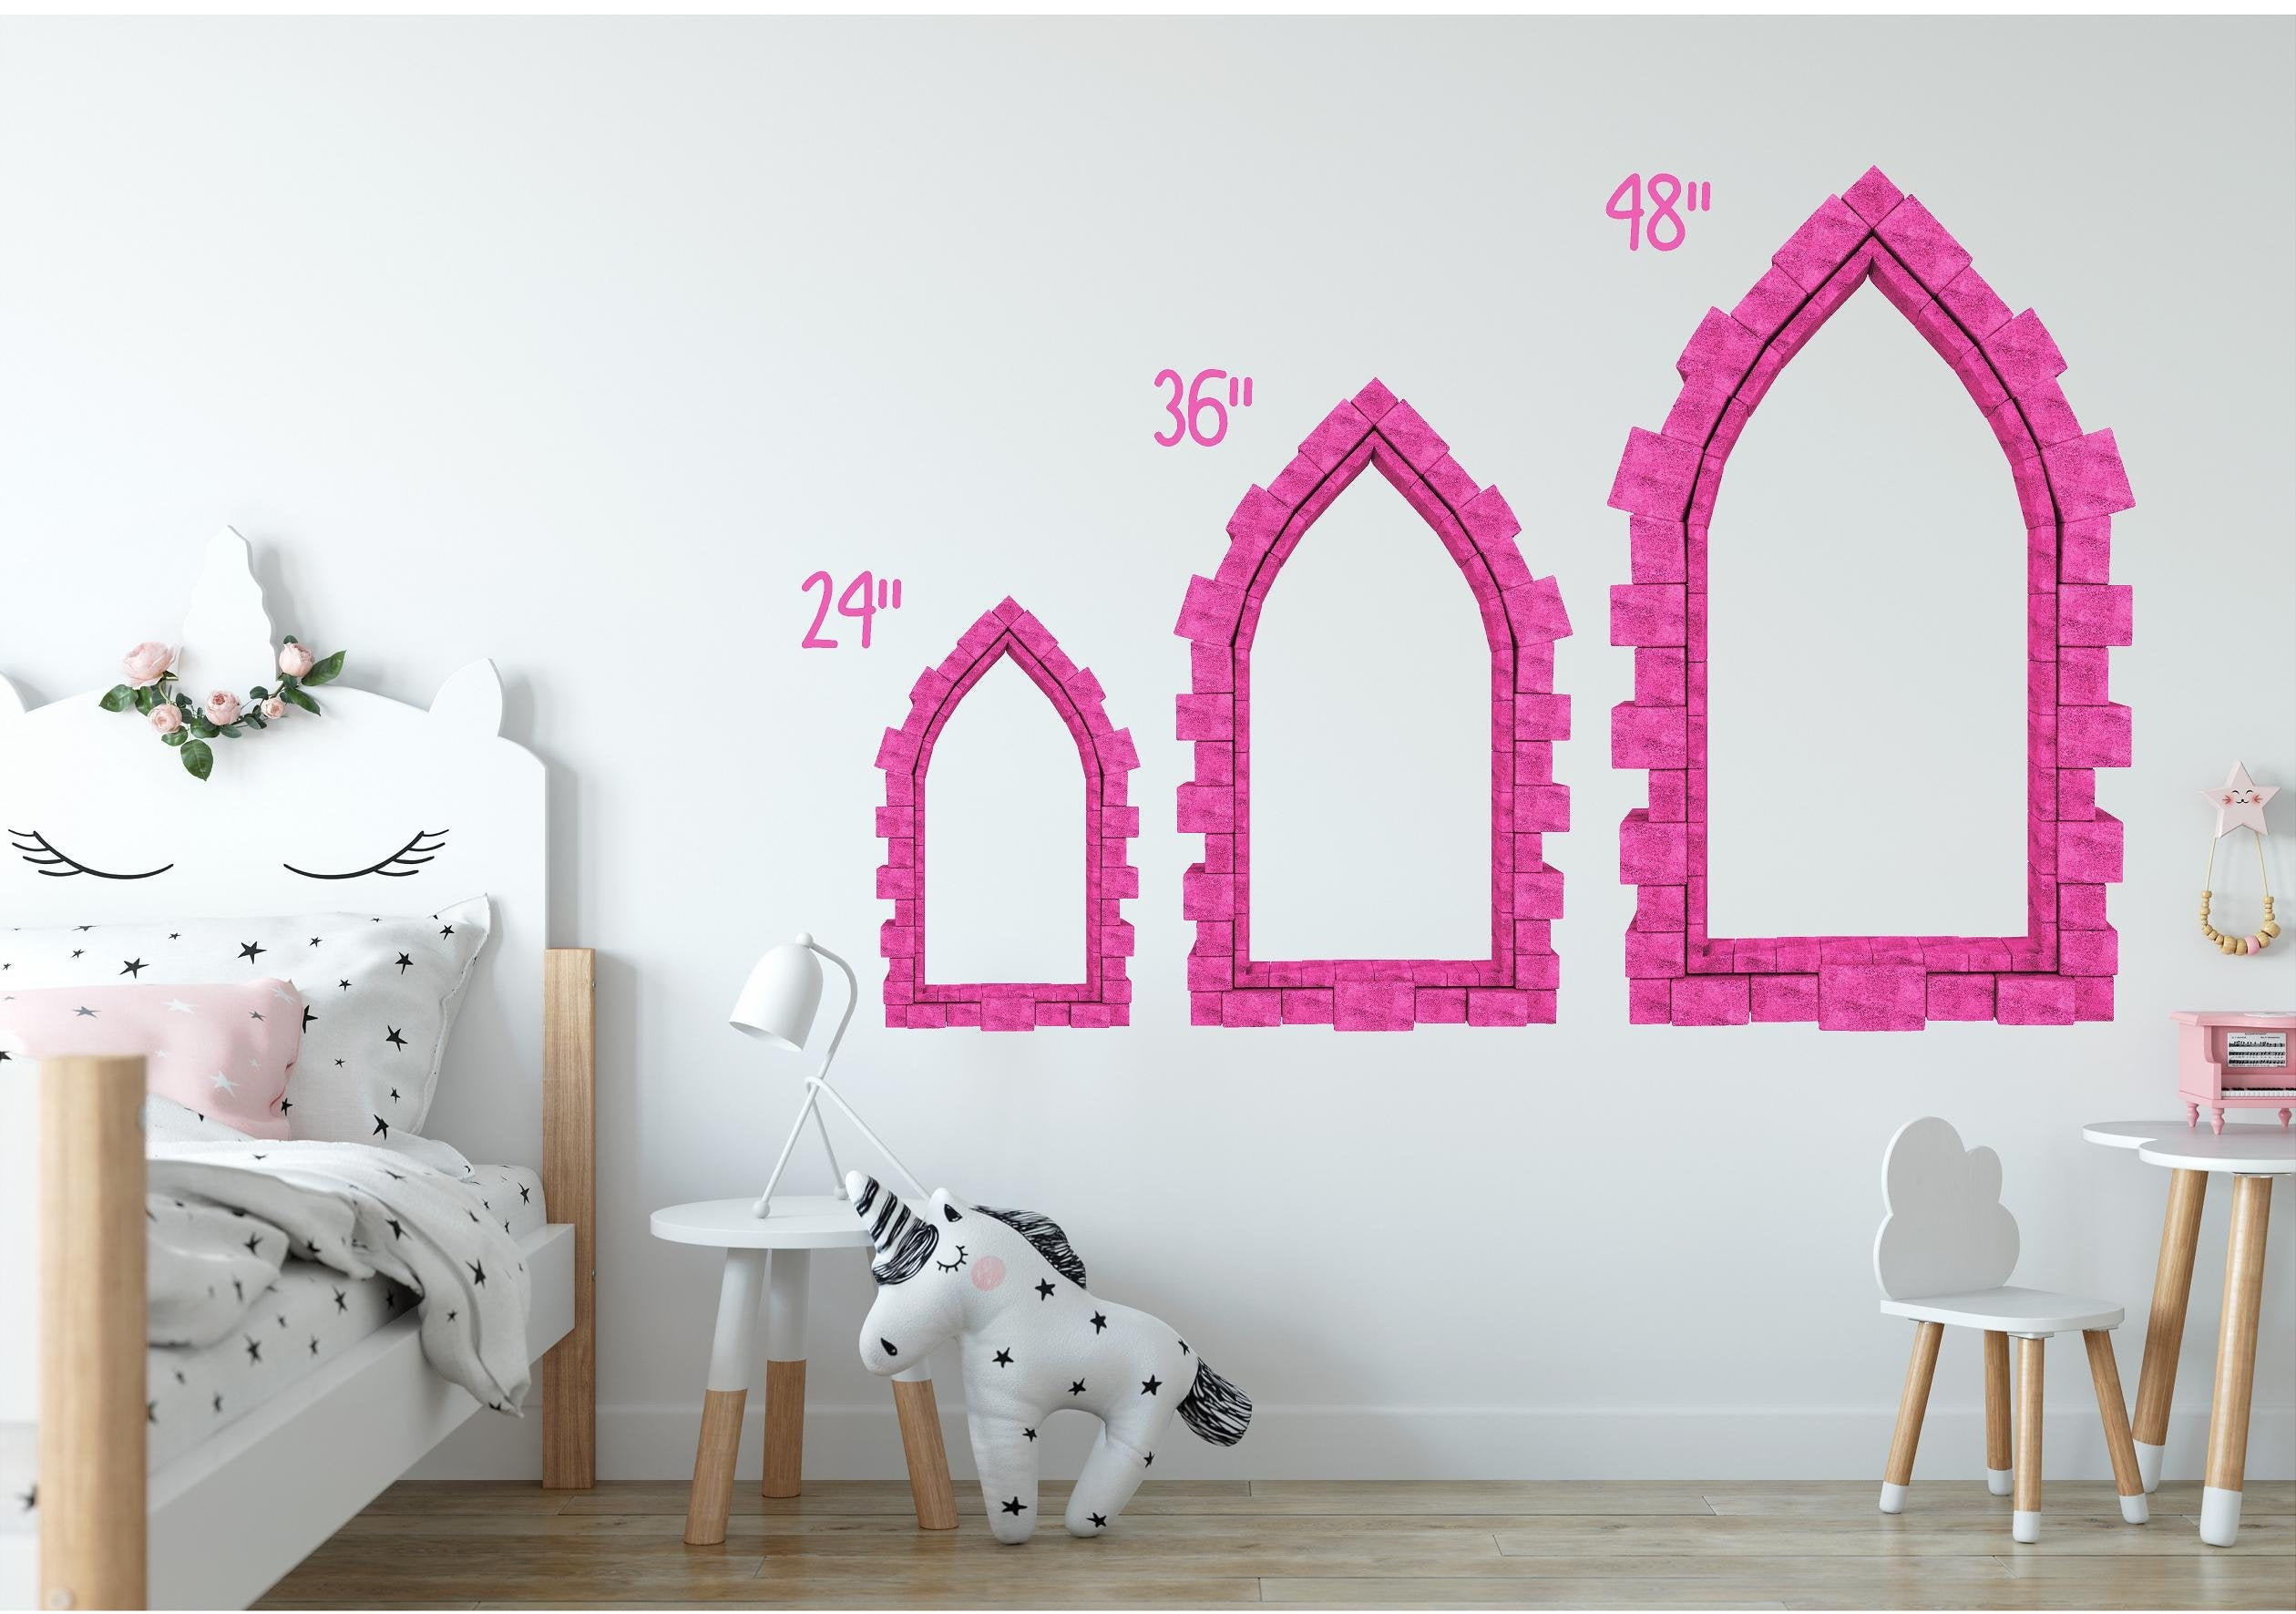 3D Castle Window Yellow Brick Road Castle Wall Decal Fantasy Removable Fabric Vinyl Wall Sticker | DecalBaby